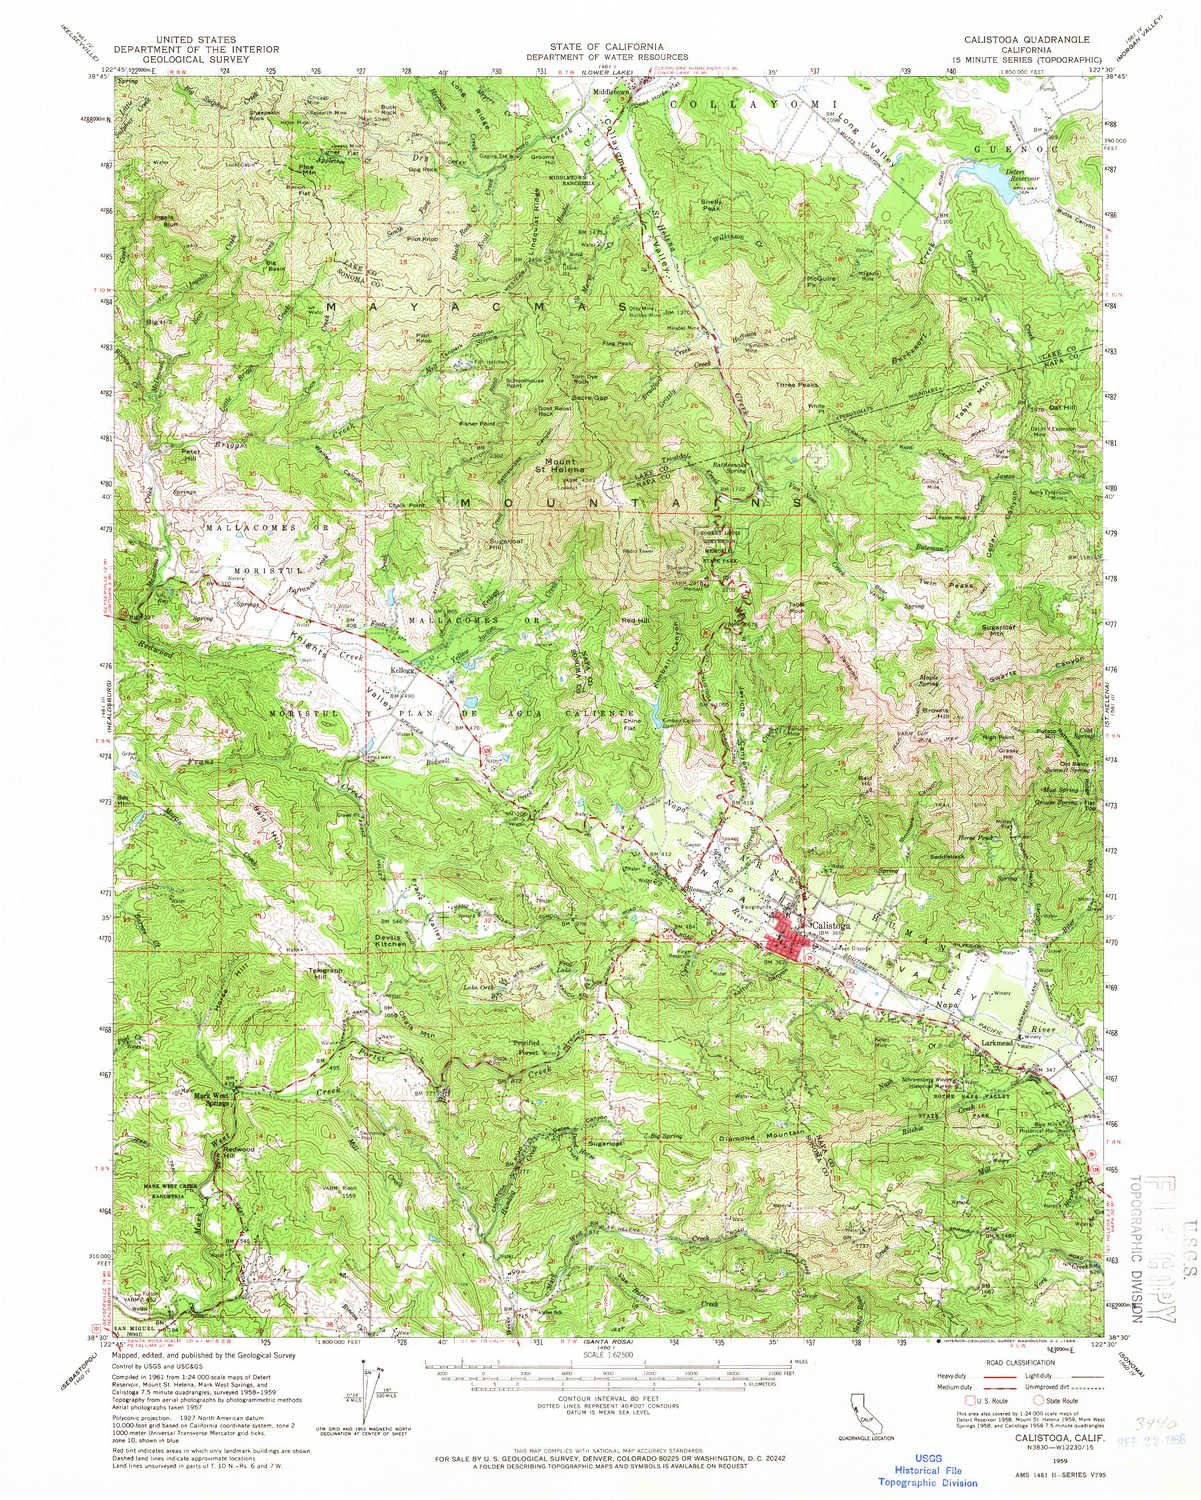 Amazon.com: YellowMaps Calistoga CA topo map, 1:62500 Scale ... on serramonte map, sonoma map, california map, angwin map, auberry map, hayfork map, lafayette map, cedar ridge map, hacienda map, dollar point map, st. augustine map, forestville map, burney map, brooktrails map, downieville map, napa map, san francisco wineries map, port costa map, chualar map, clayton map,